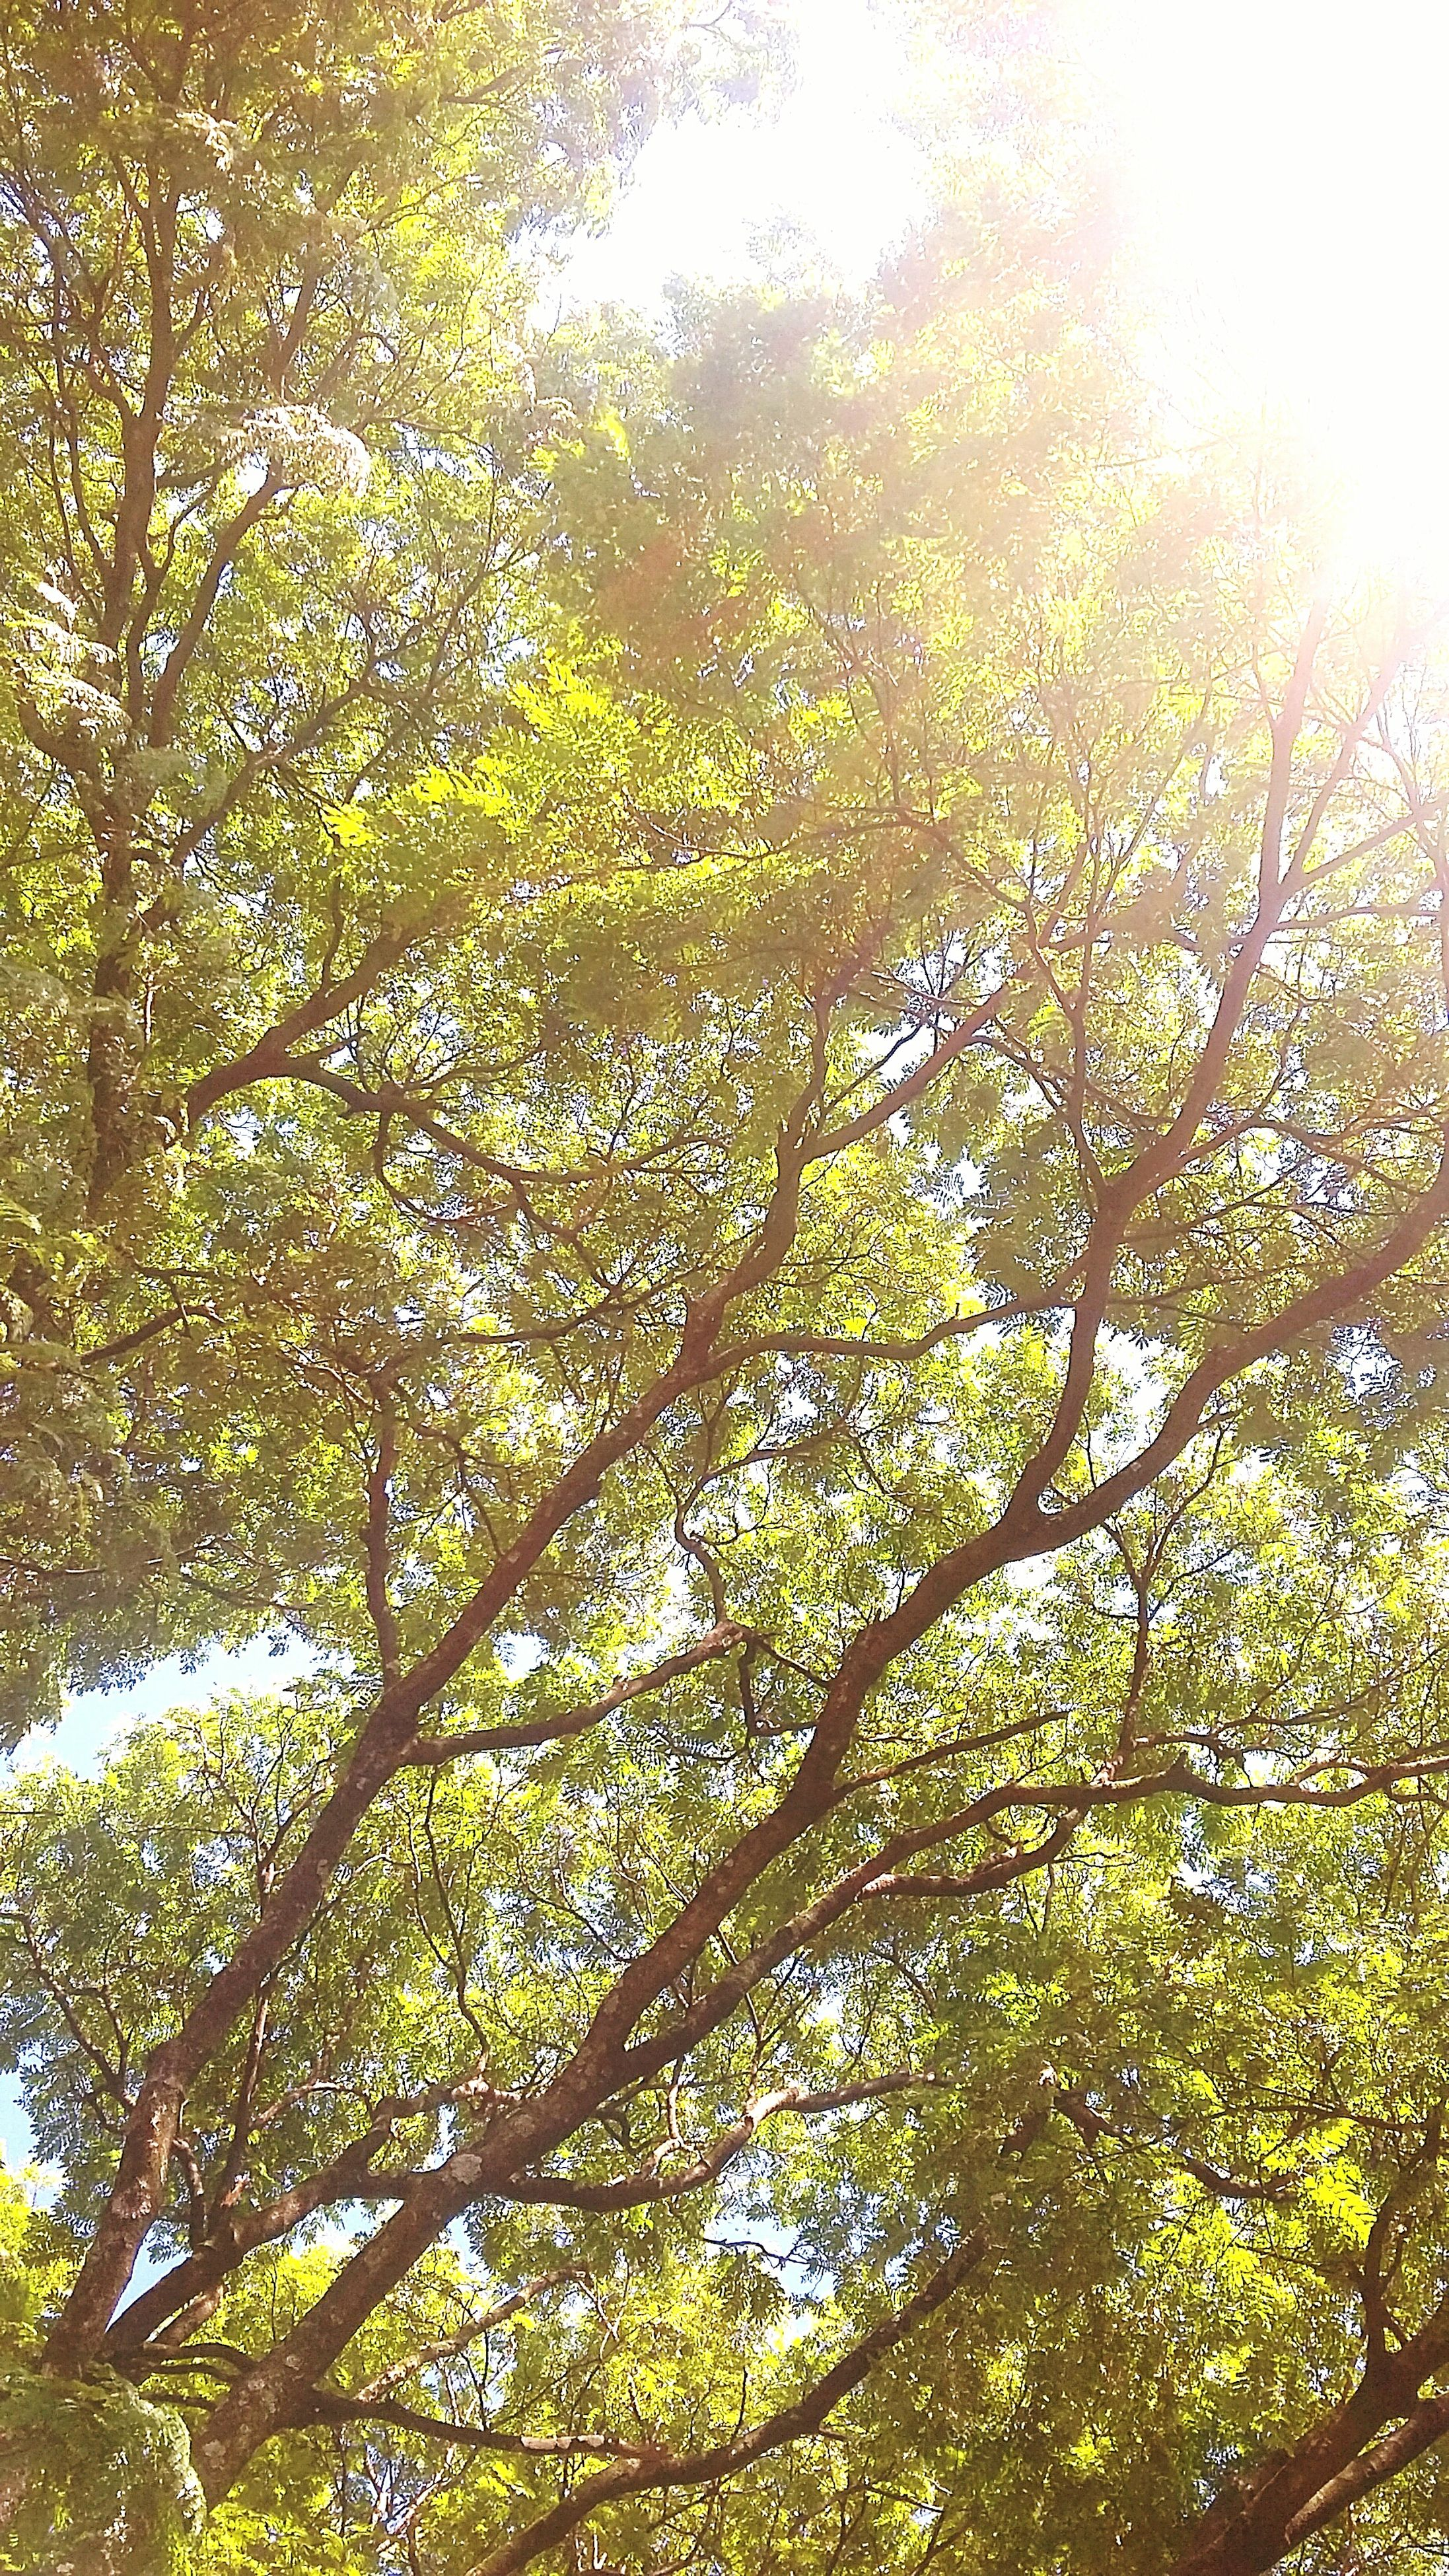 tree, growth, low angle view, branch, green color, nature, tranquility, beauty in nature, leaf, sunlight, lush foliage, full frame, day, forest, outdoors, tranquil scene, scenics, backgrounds, no people, green